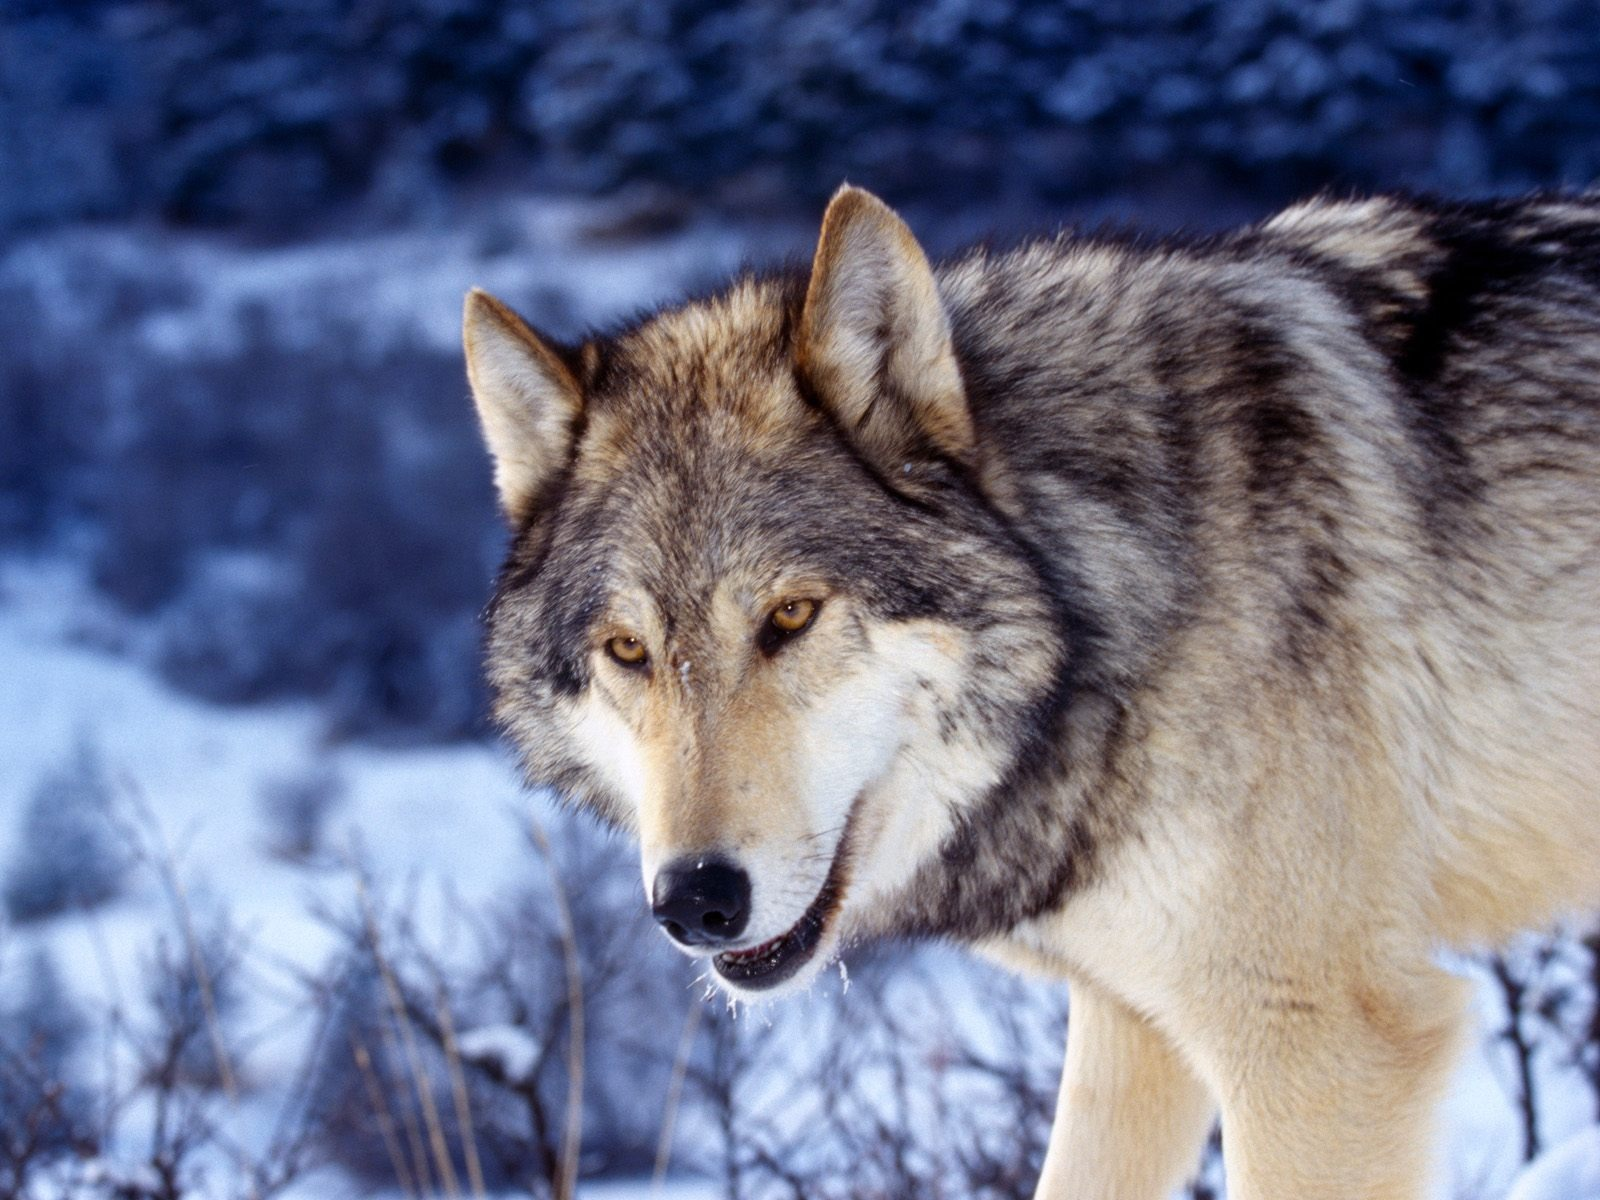 Must see Wallpaper Angry Gray Wolf - gray_wolf_in_snow_wallpaper_wolves_animals_482  You Should Have_919338      .jpg